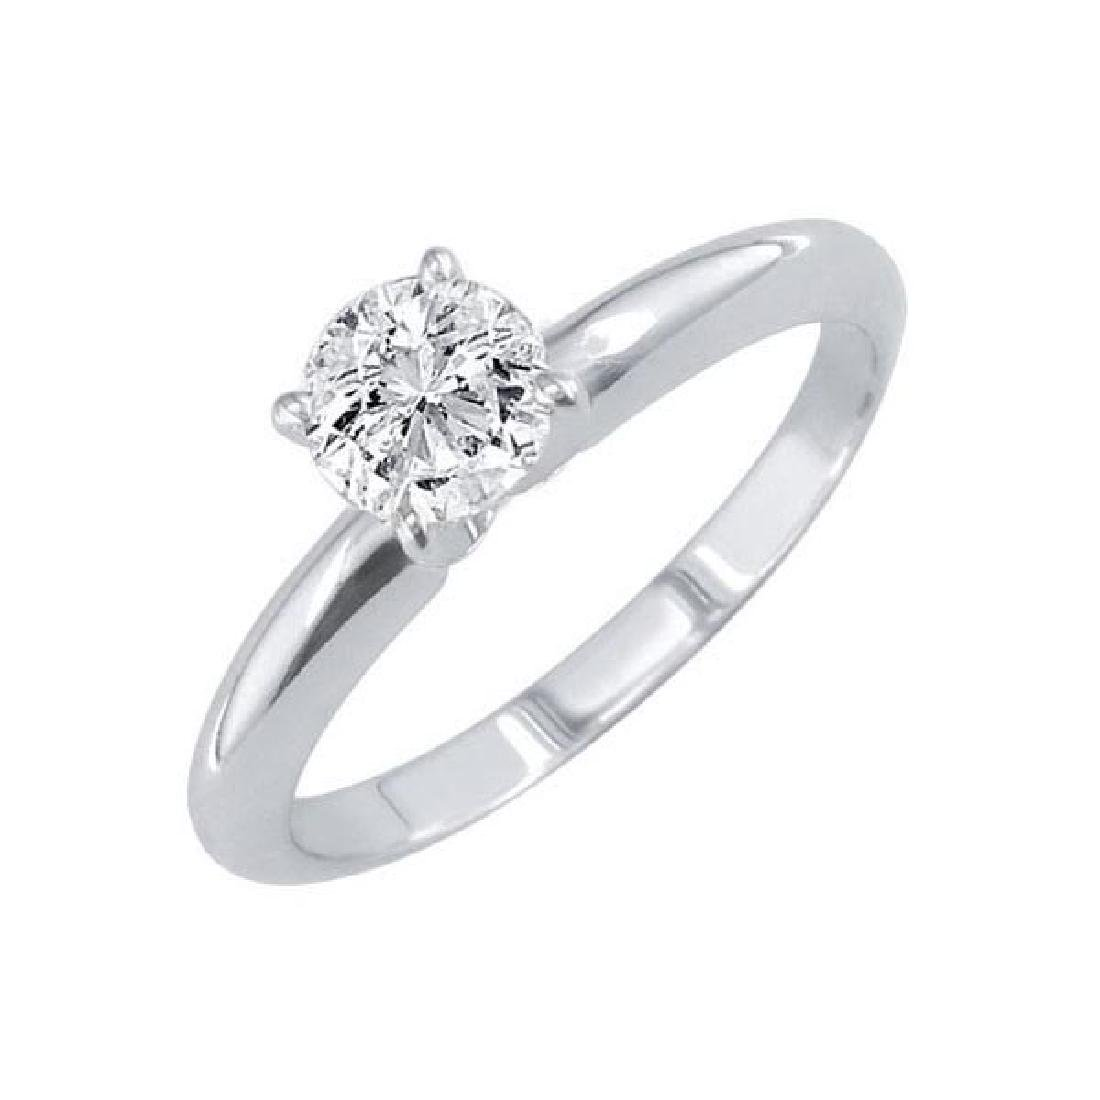 Certified 0.84 CTW Round Diamond Solitaire 14k Ring H/S